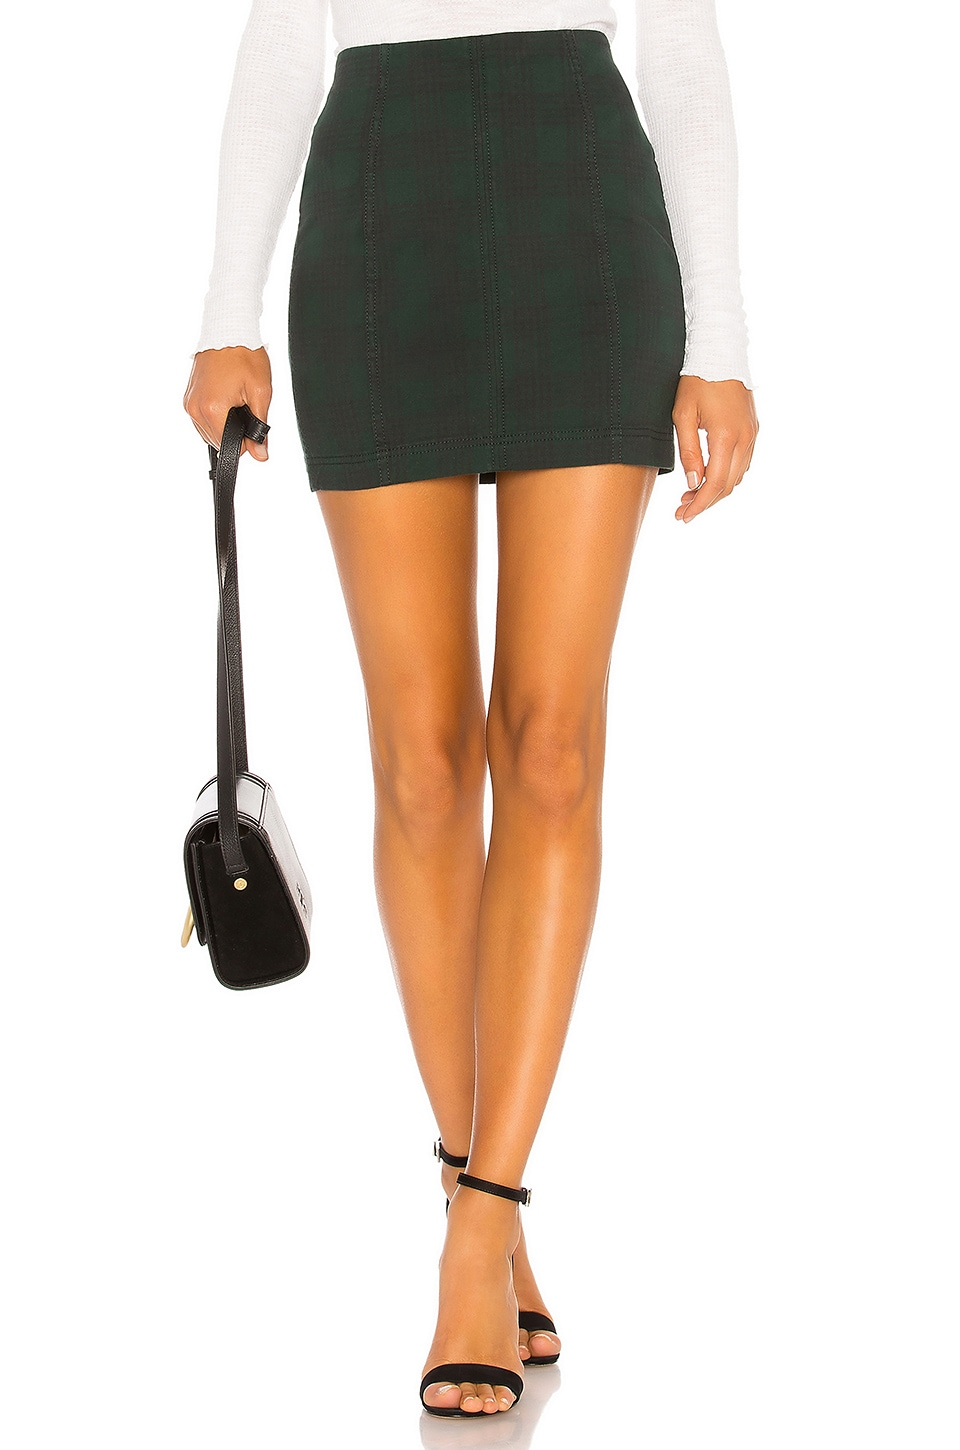 Free People Modern Femme Mini Skirt in Dark Green